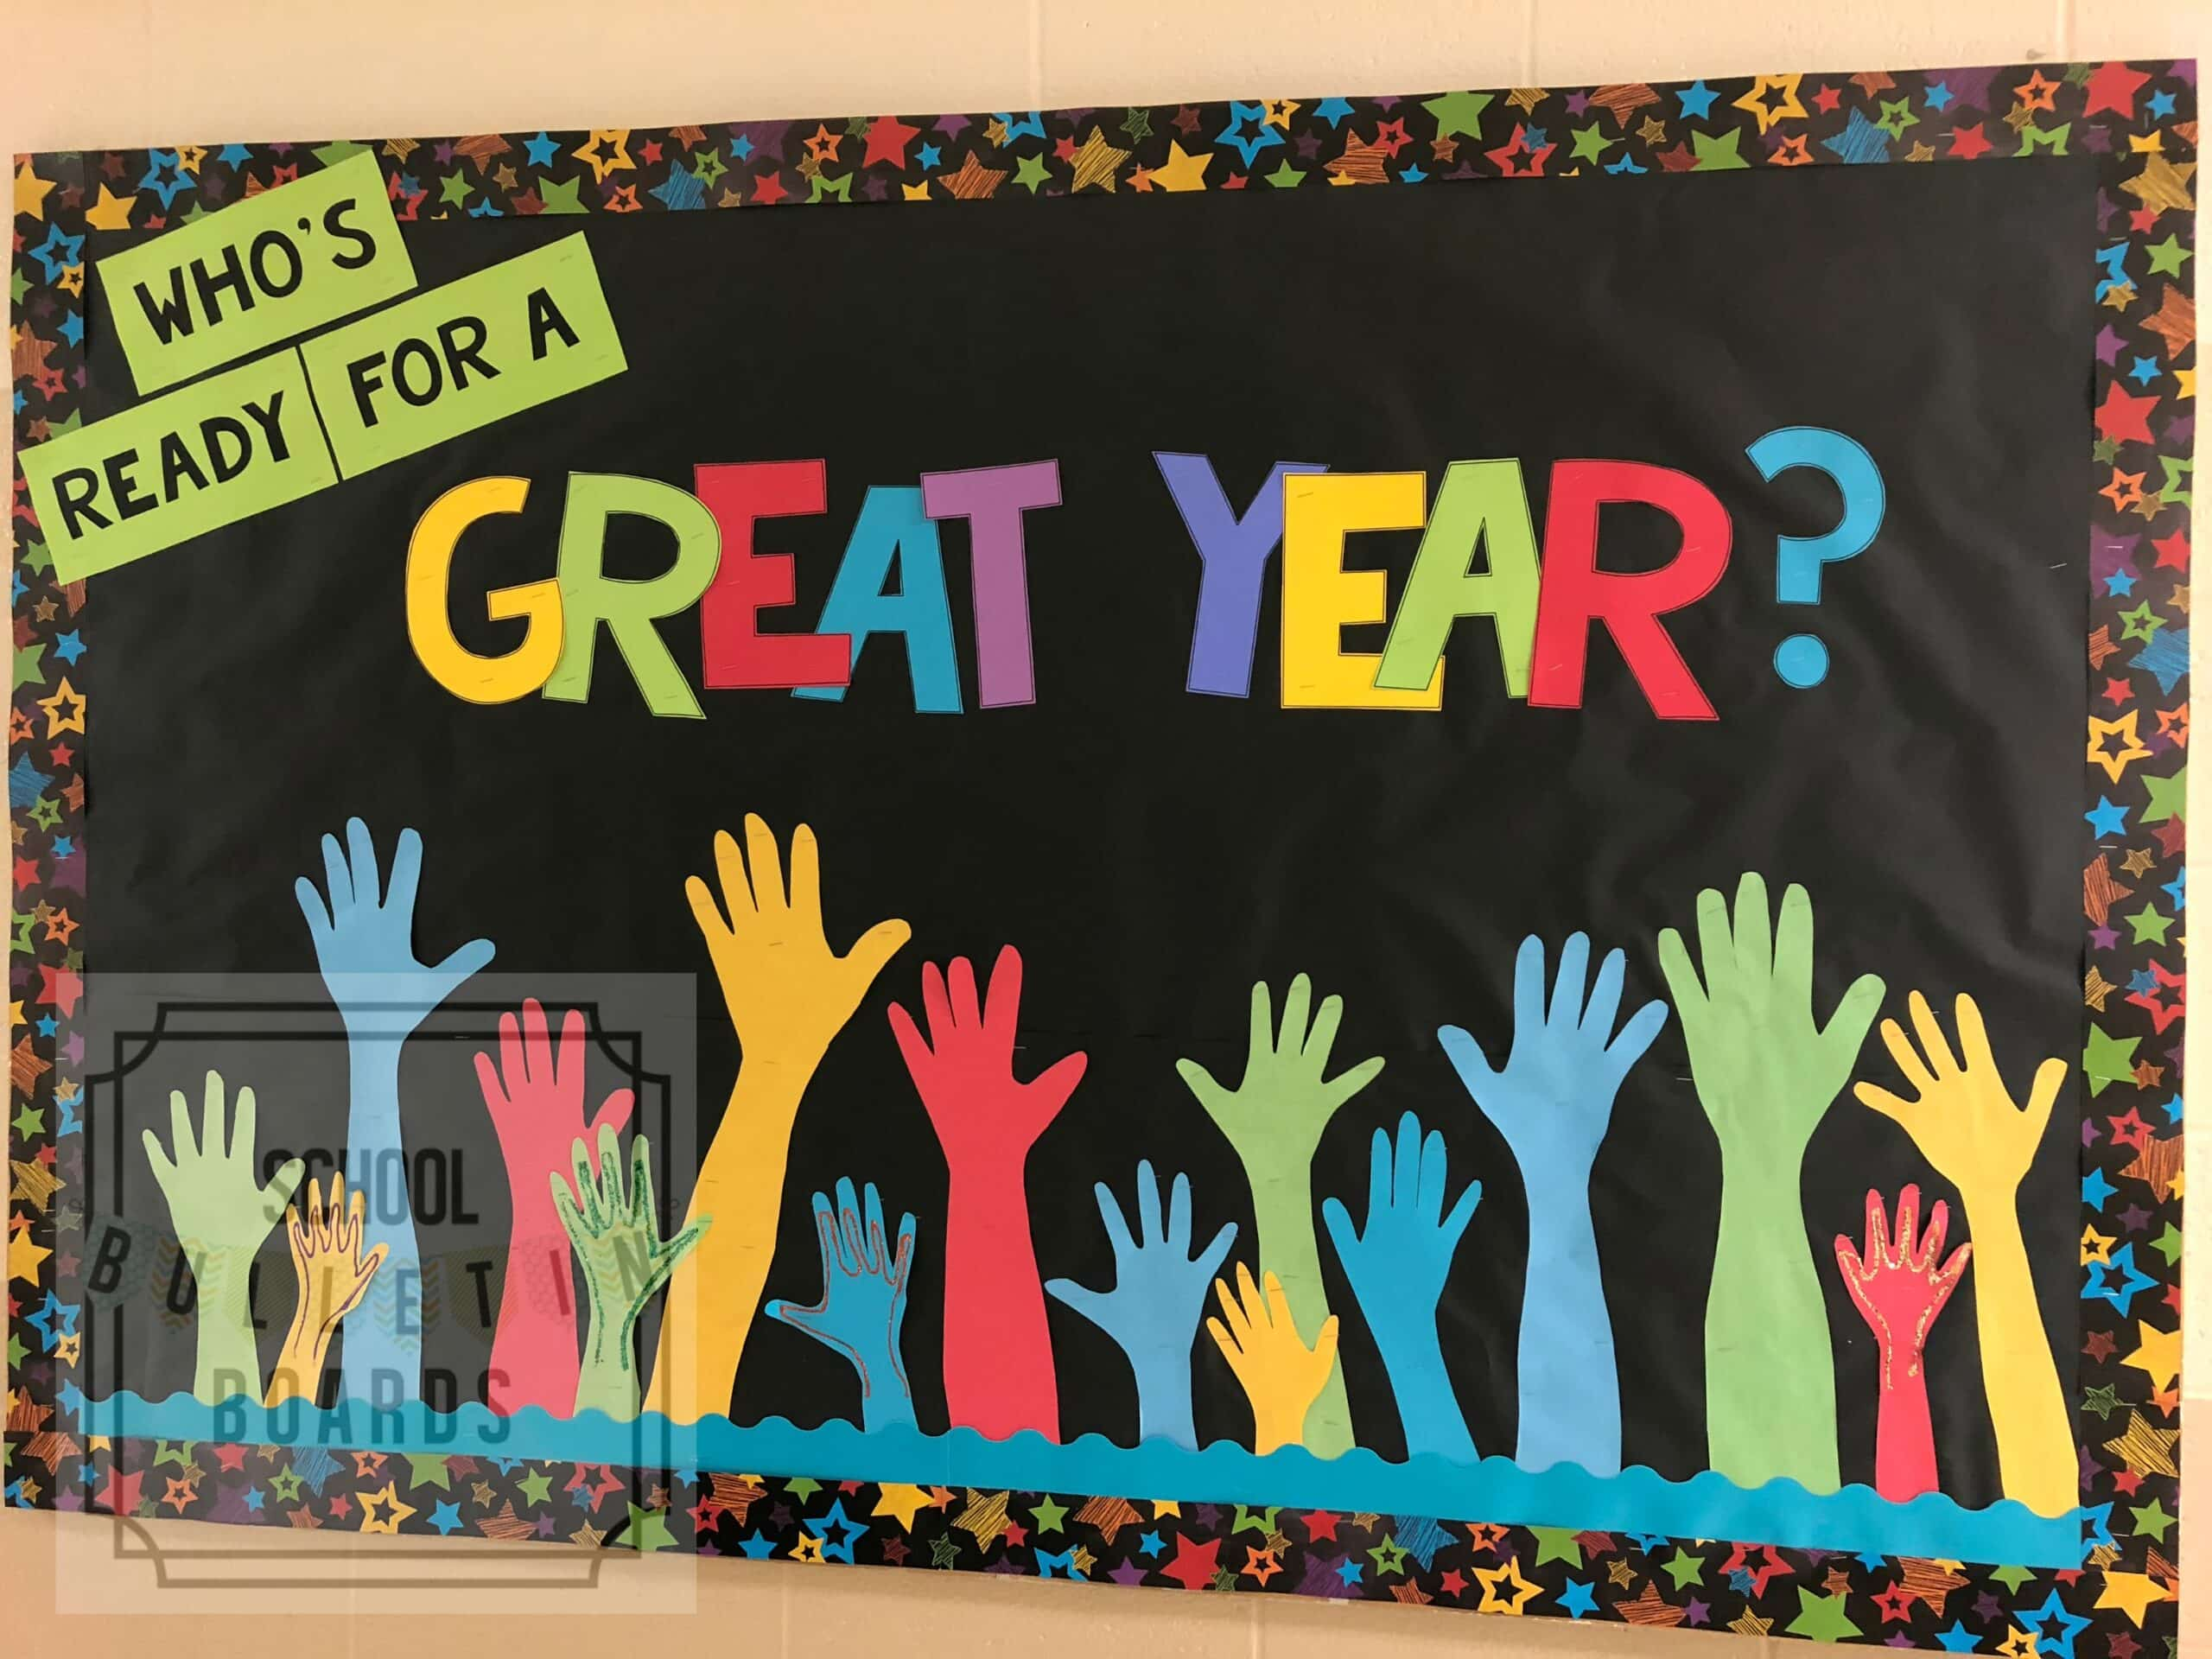 Back to School bulletin boards don't have to be time consuming or super cutesy.  Even better when they get students involved in the process too! #backtoschool #bulletinboards